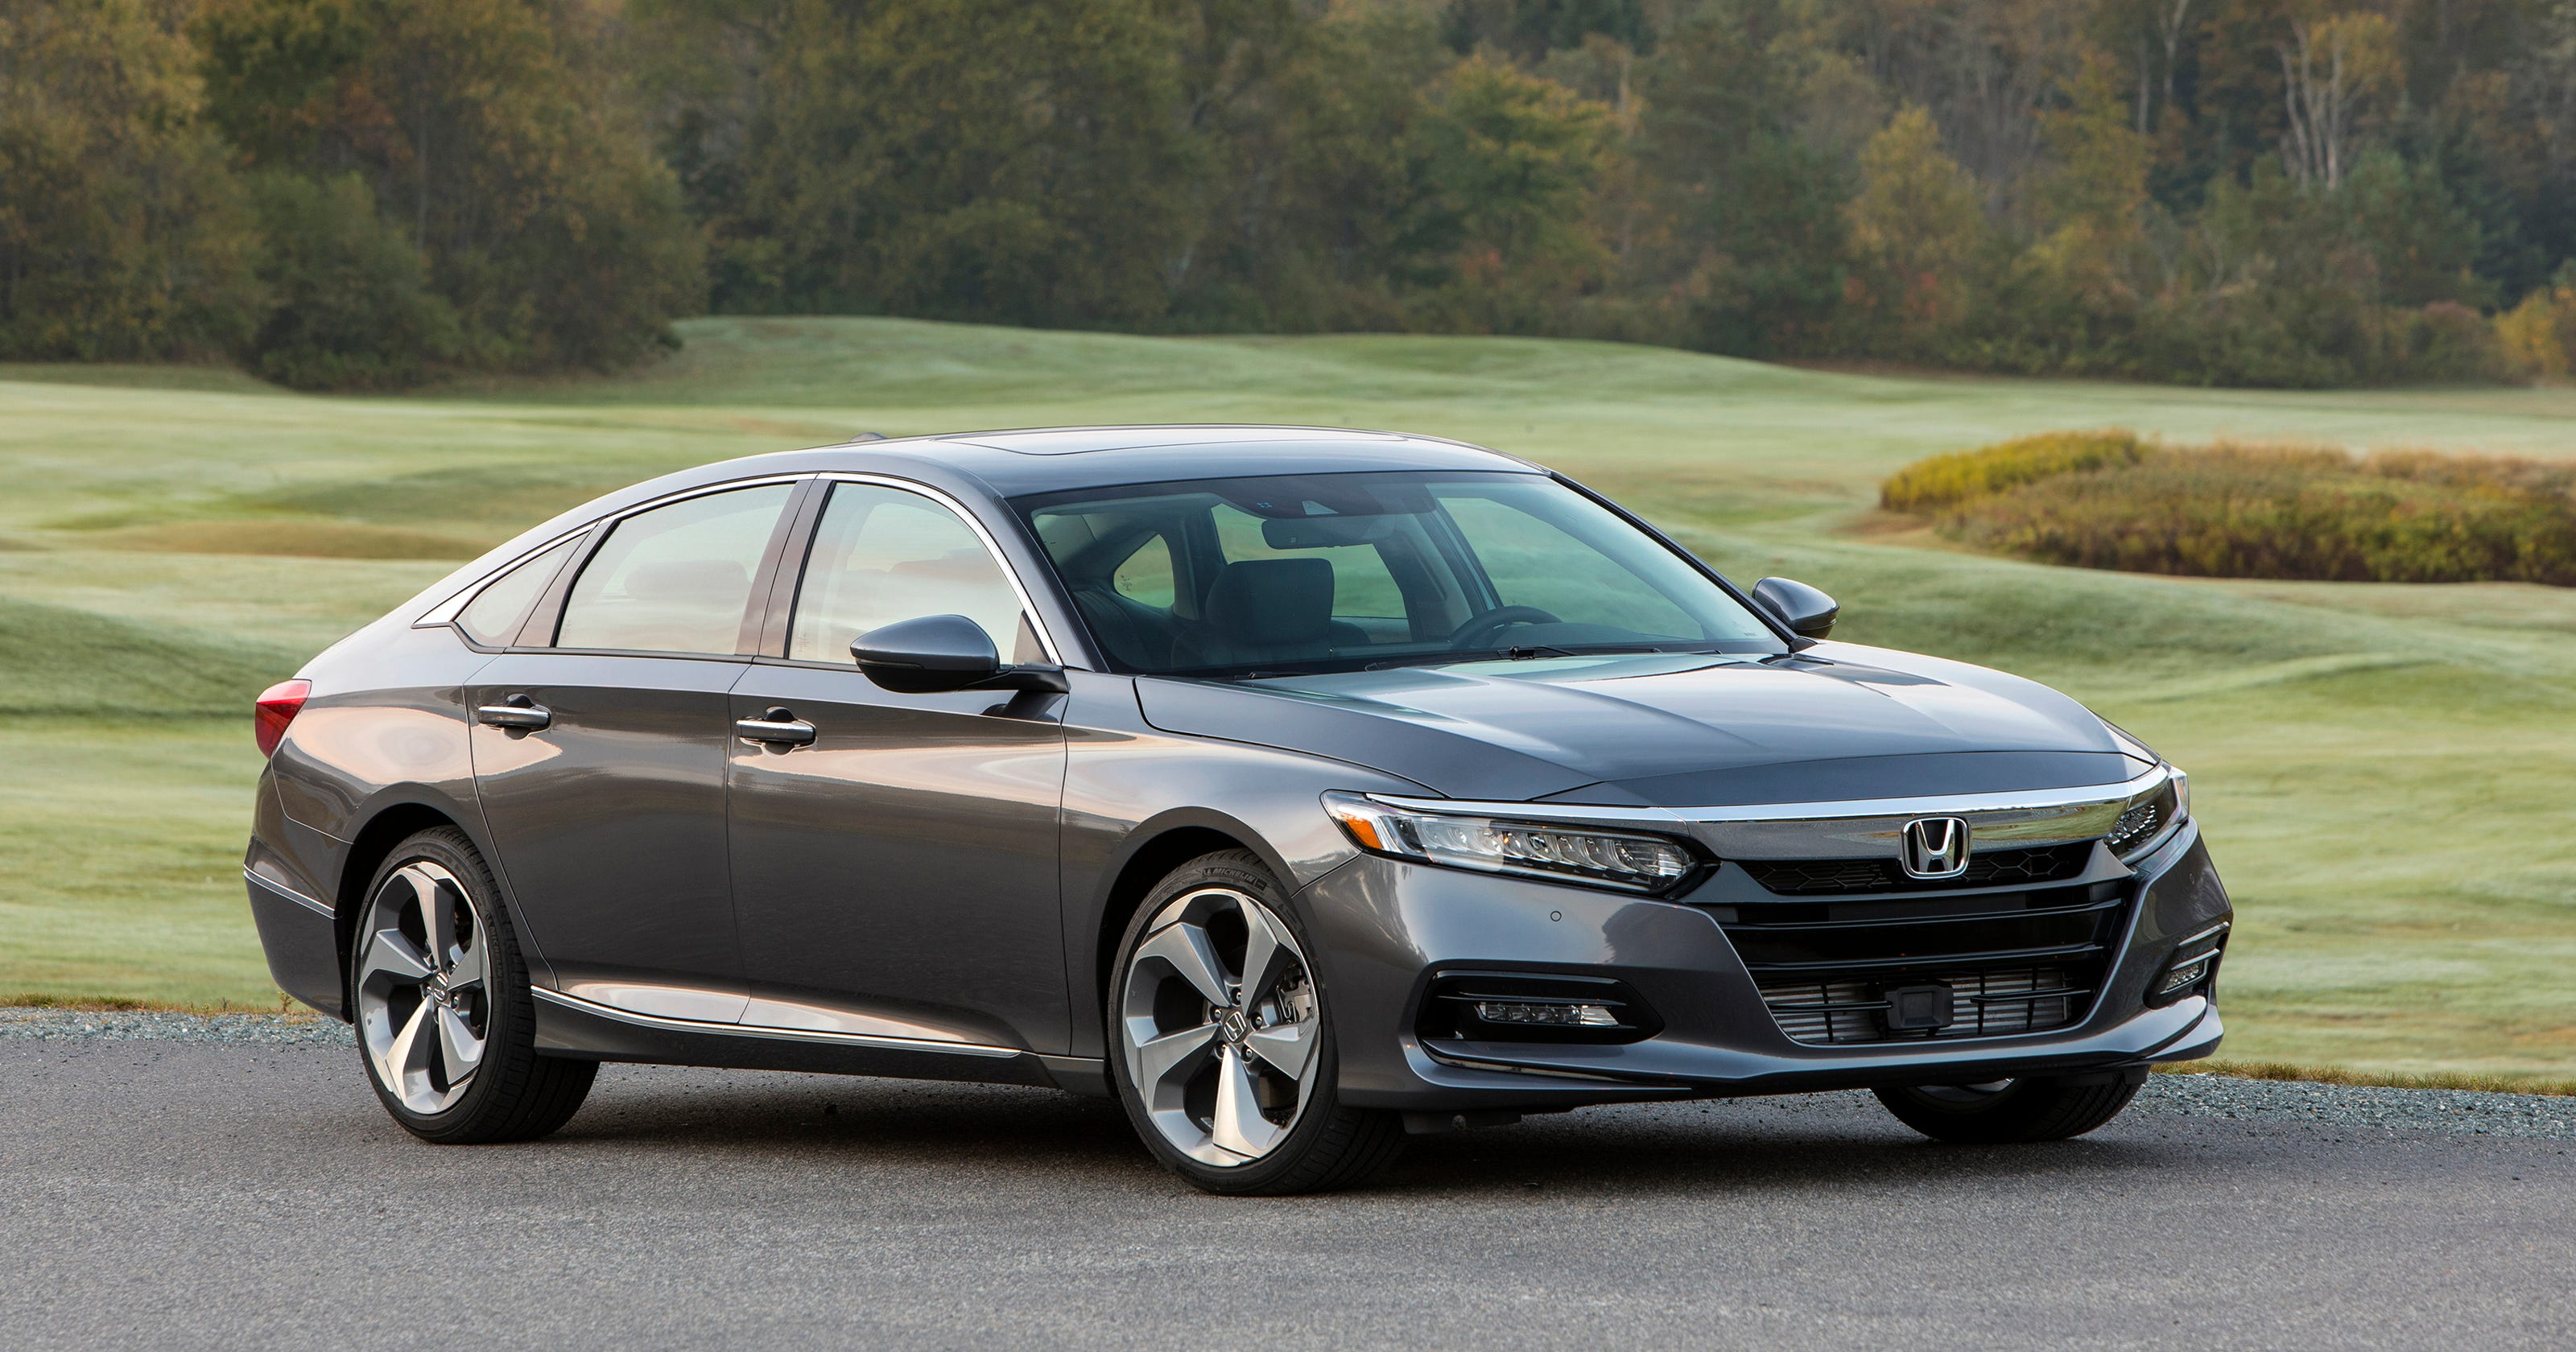 Honda Accord Sport Special Edition >> People aren't buying the Honda Accord: Here's why